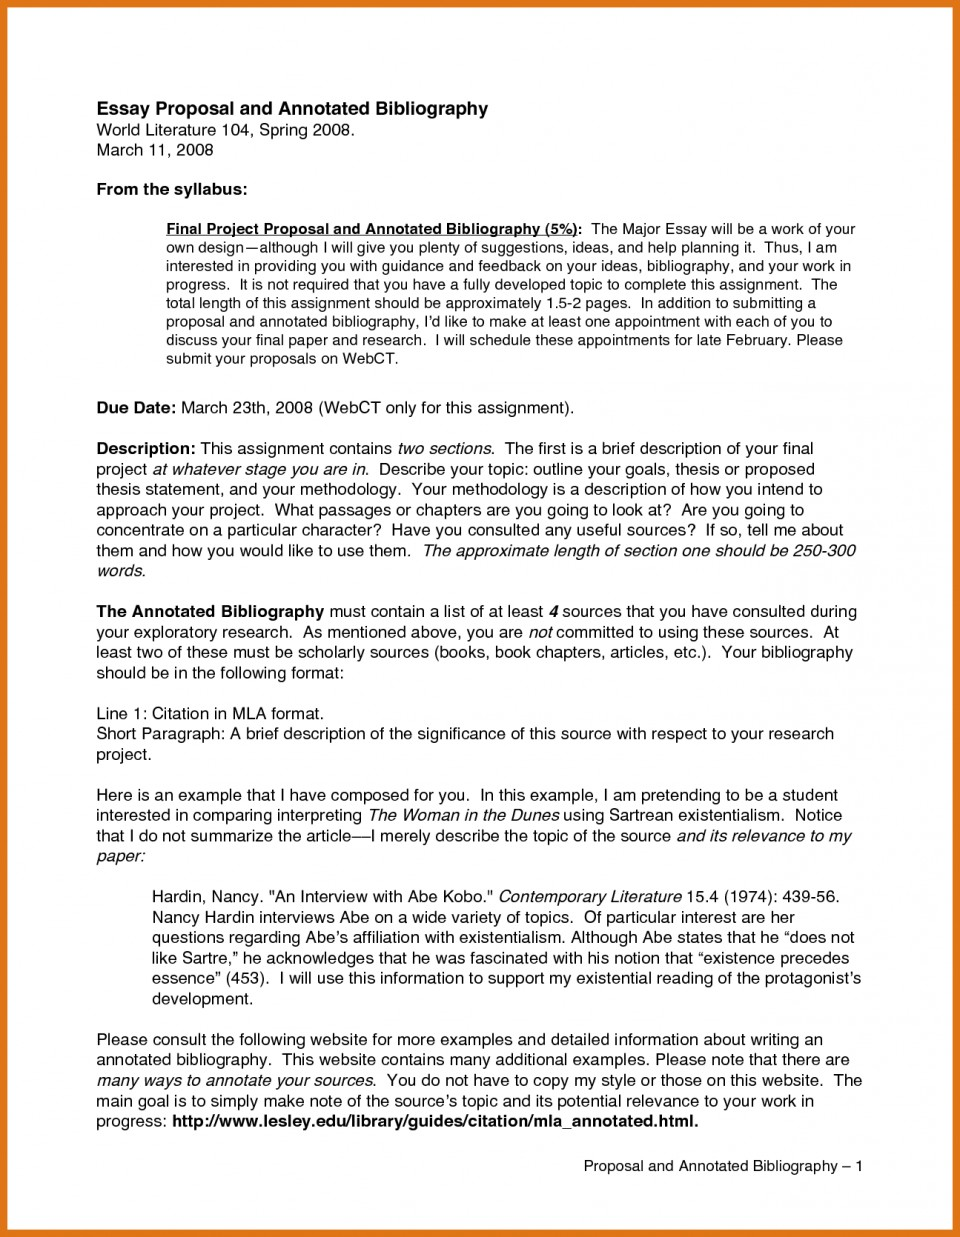 Personal statement equal justice foundation services program